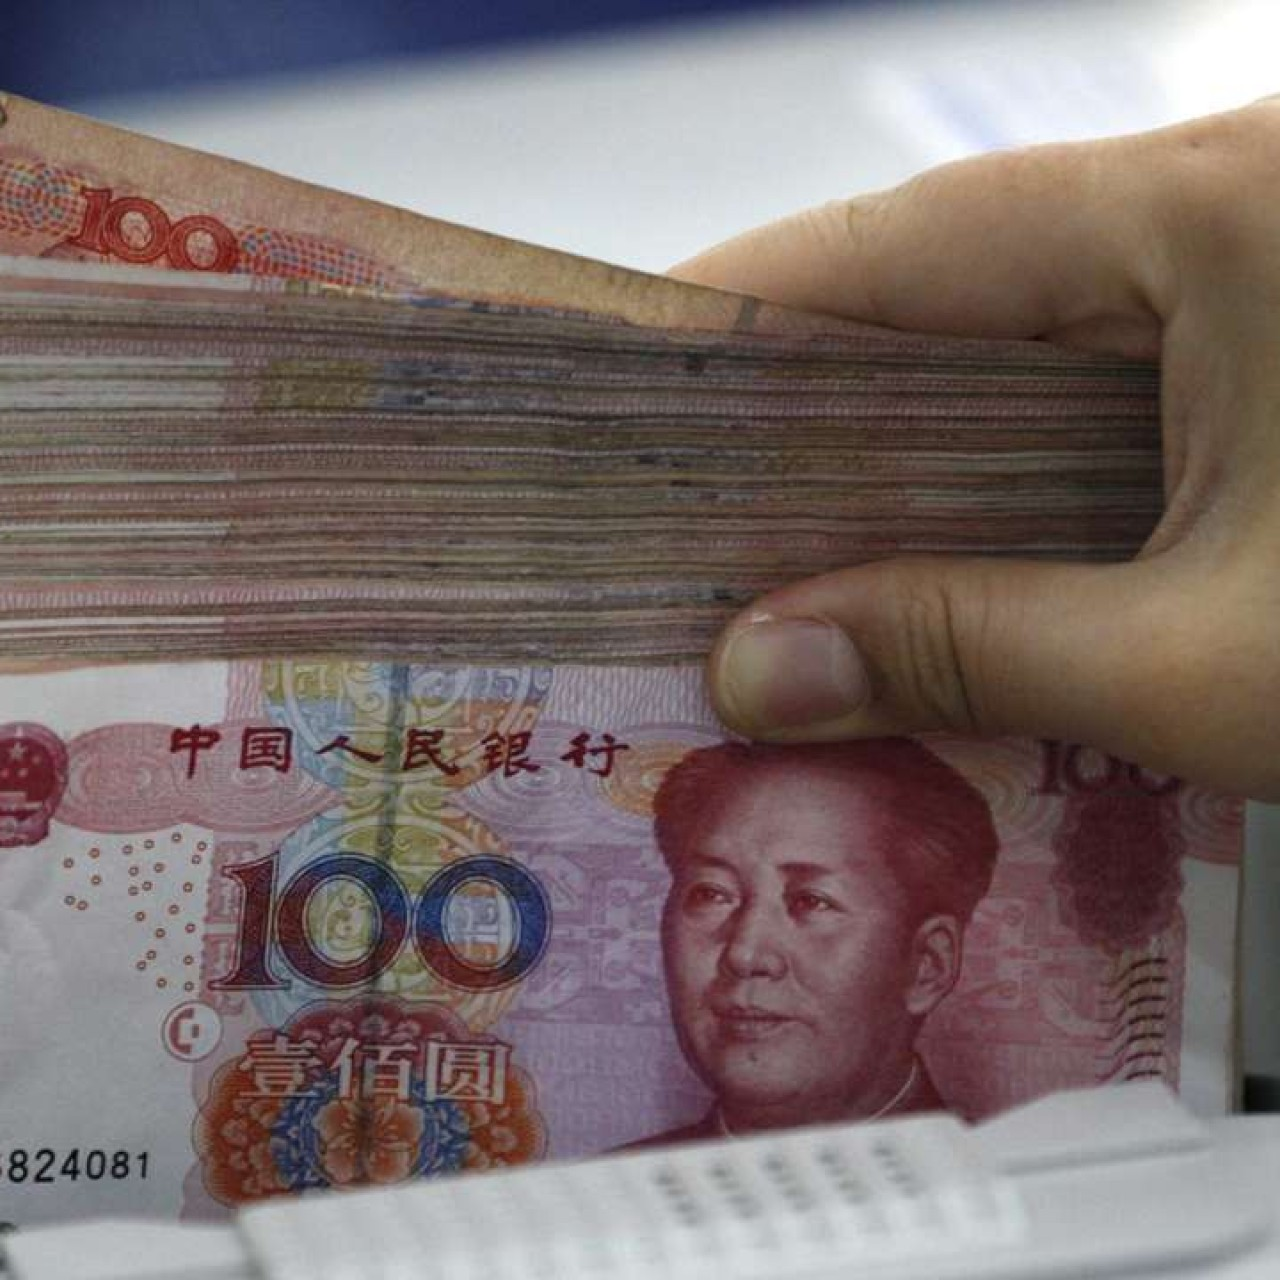 China's real reason for getting yuan into IMF's (otherwise pointless